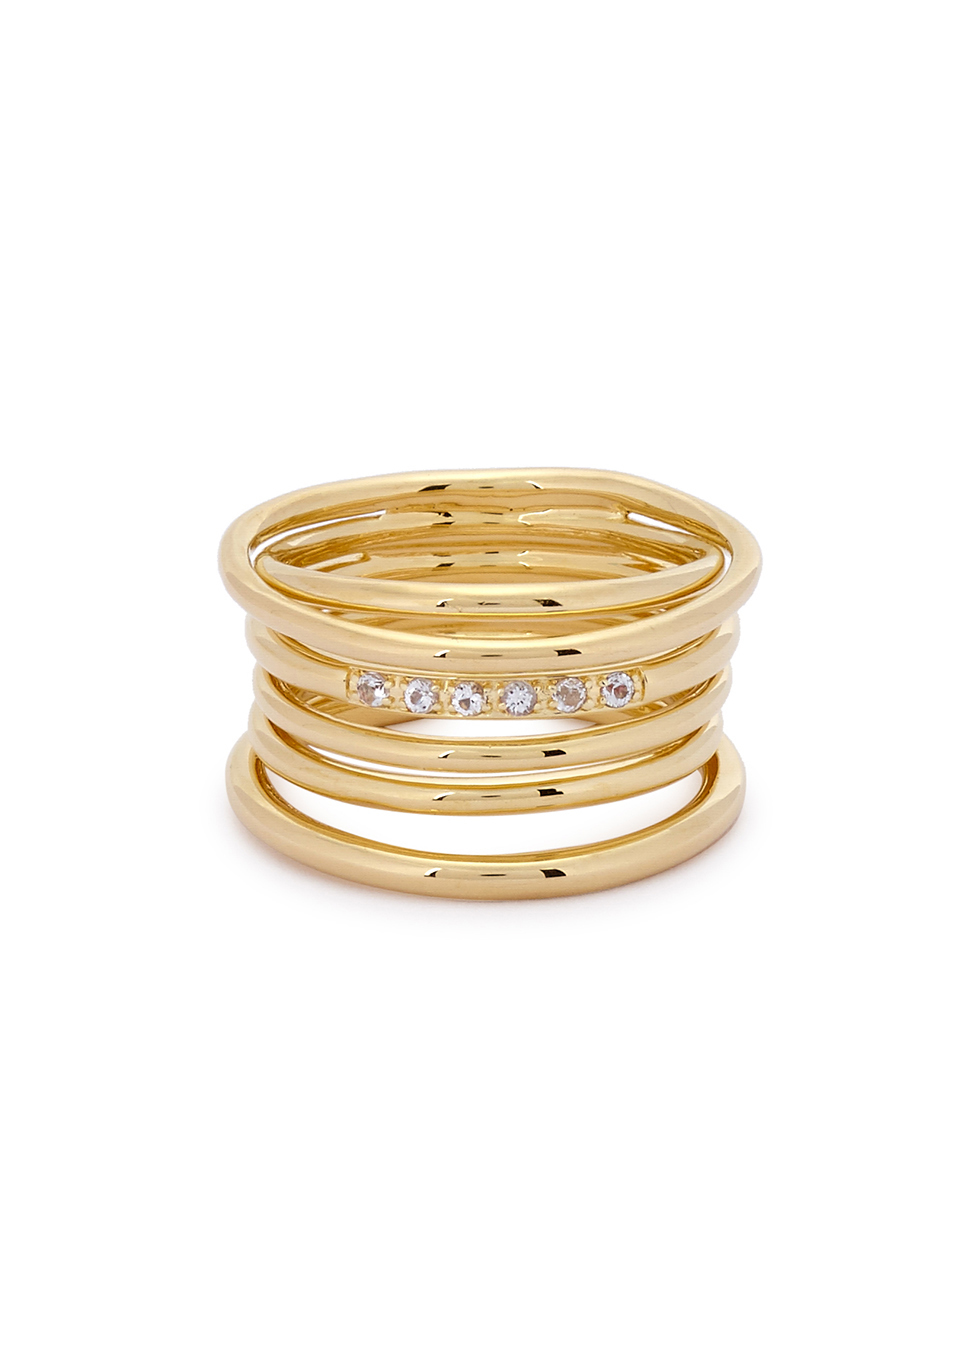 Roxy 23kt Gold Plated Ring - predominant colour: gold; occasions: evening, occasion; style: band; size: large/oversized; material: chain/metal; finish: metallic; embellishment: crystals/glass; season: a/w 2016; wardrobe: event